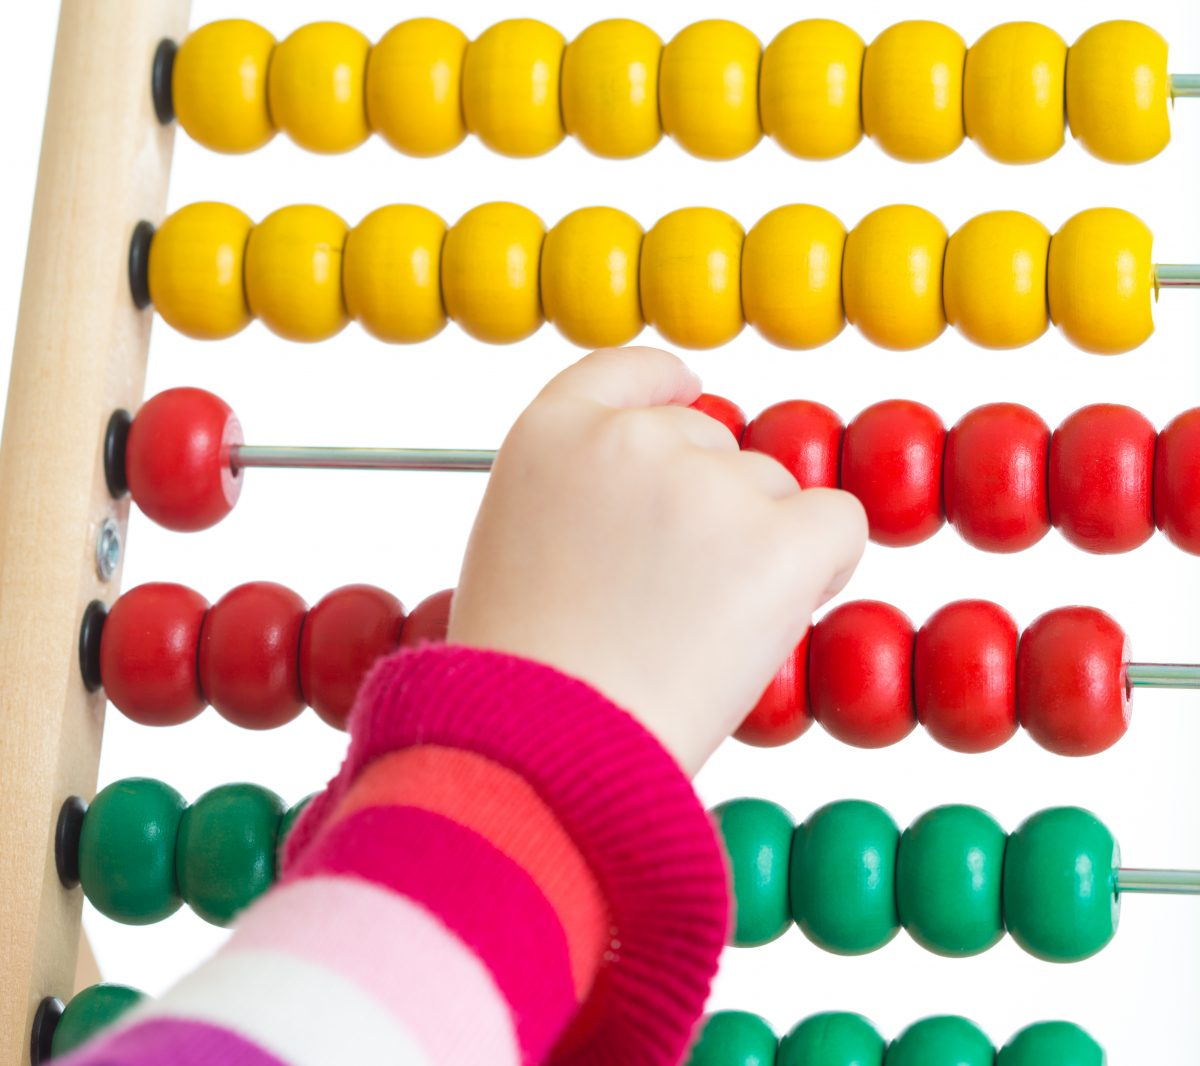 Abacus and child